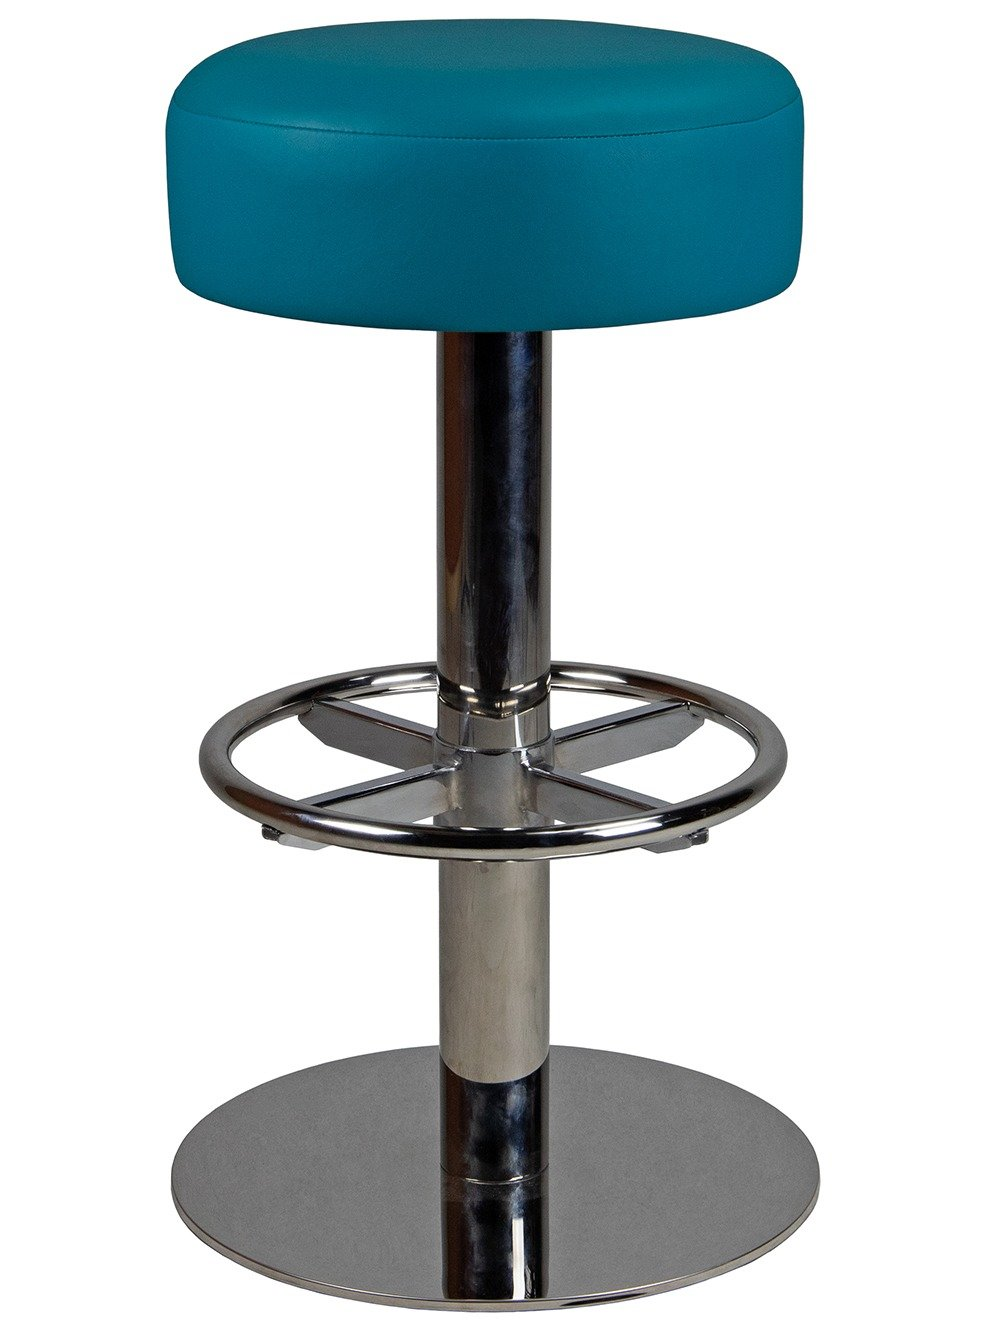 Phobos High Stool